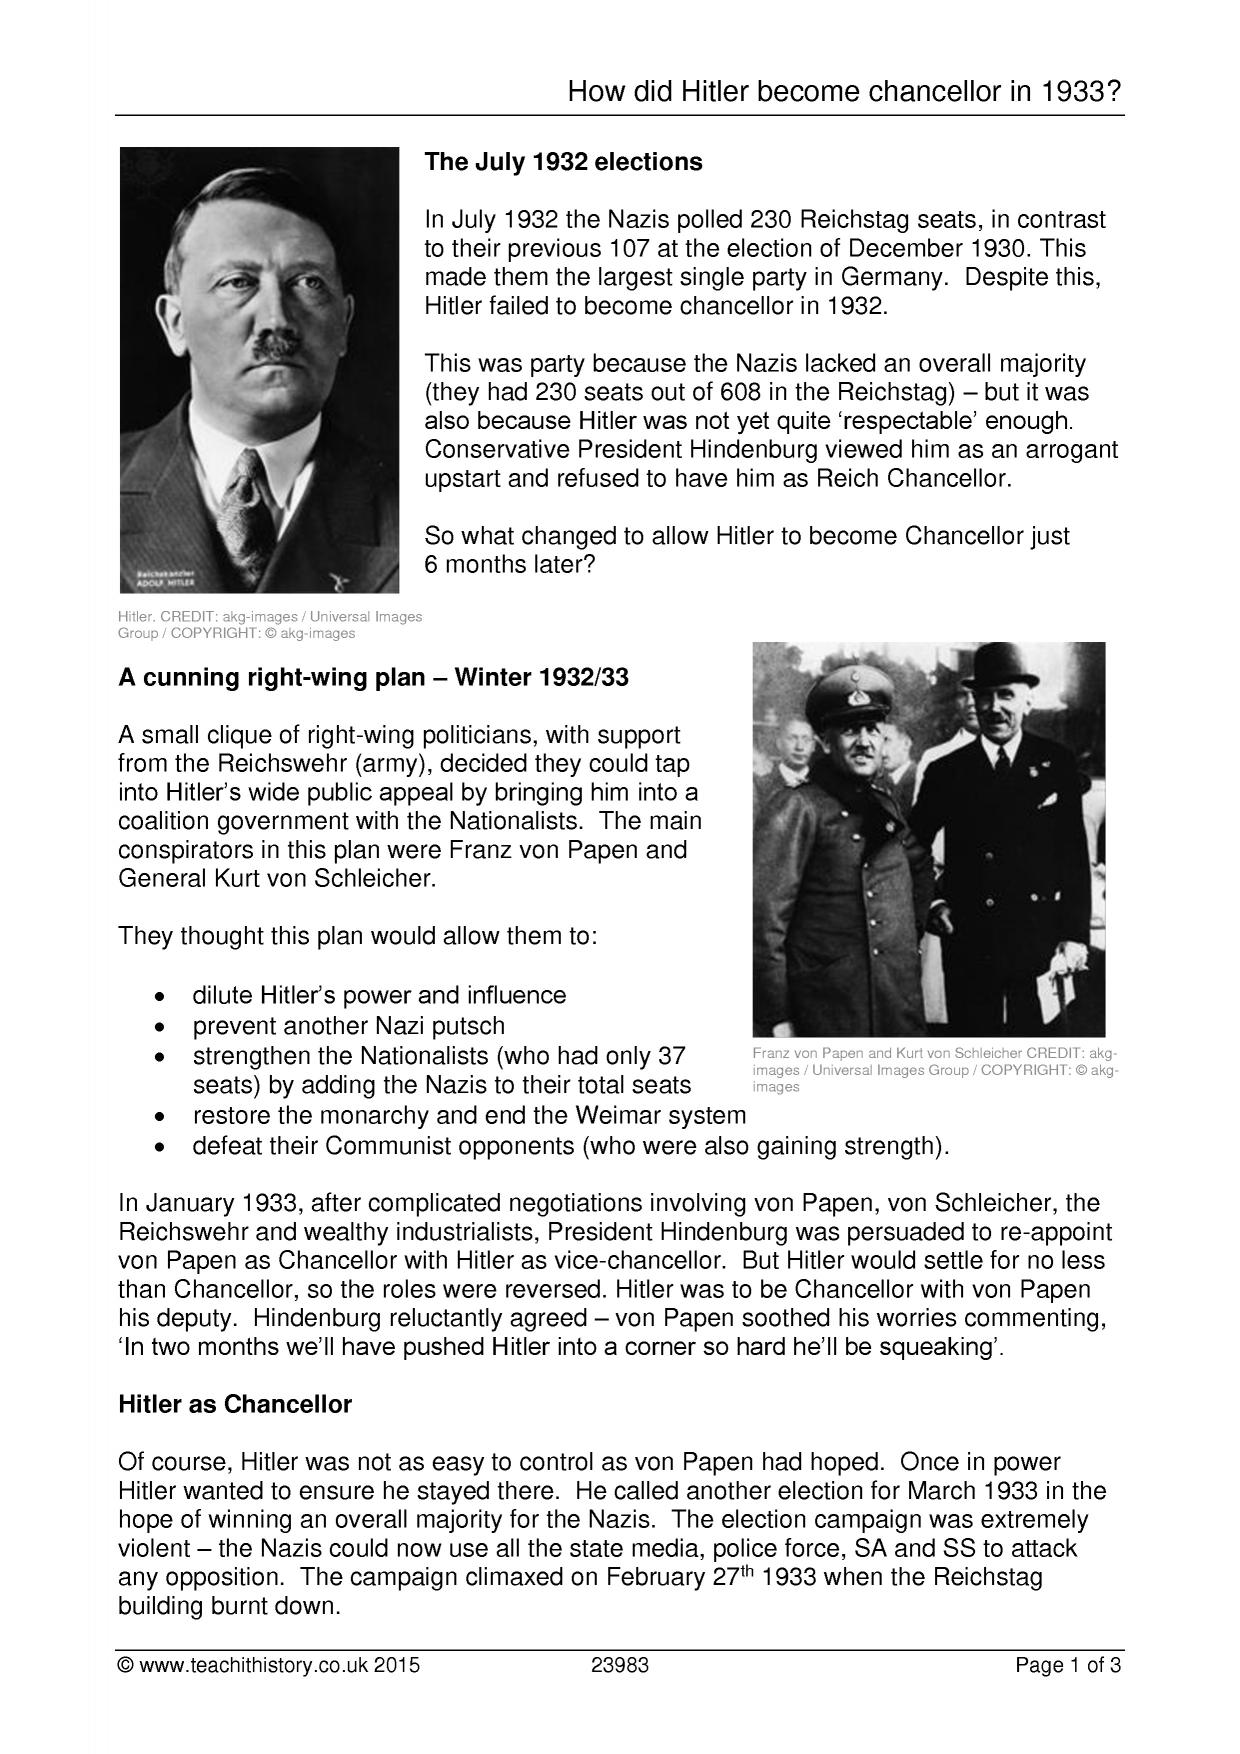 adolf hitler the chancellor of germany essay Adolf hitler appointed chancellor  on the day of his appointment as german chancellor, adolf hitler greets a crowd of enthusiastic germans from a  germany .